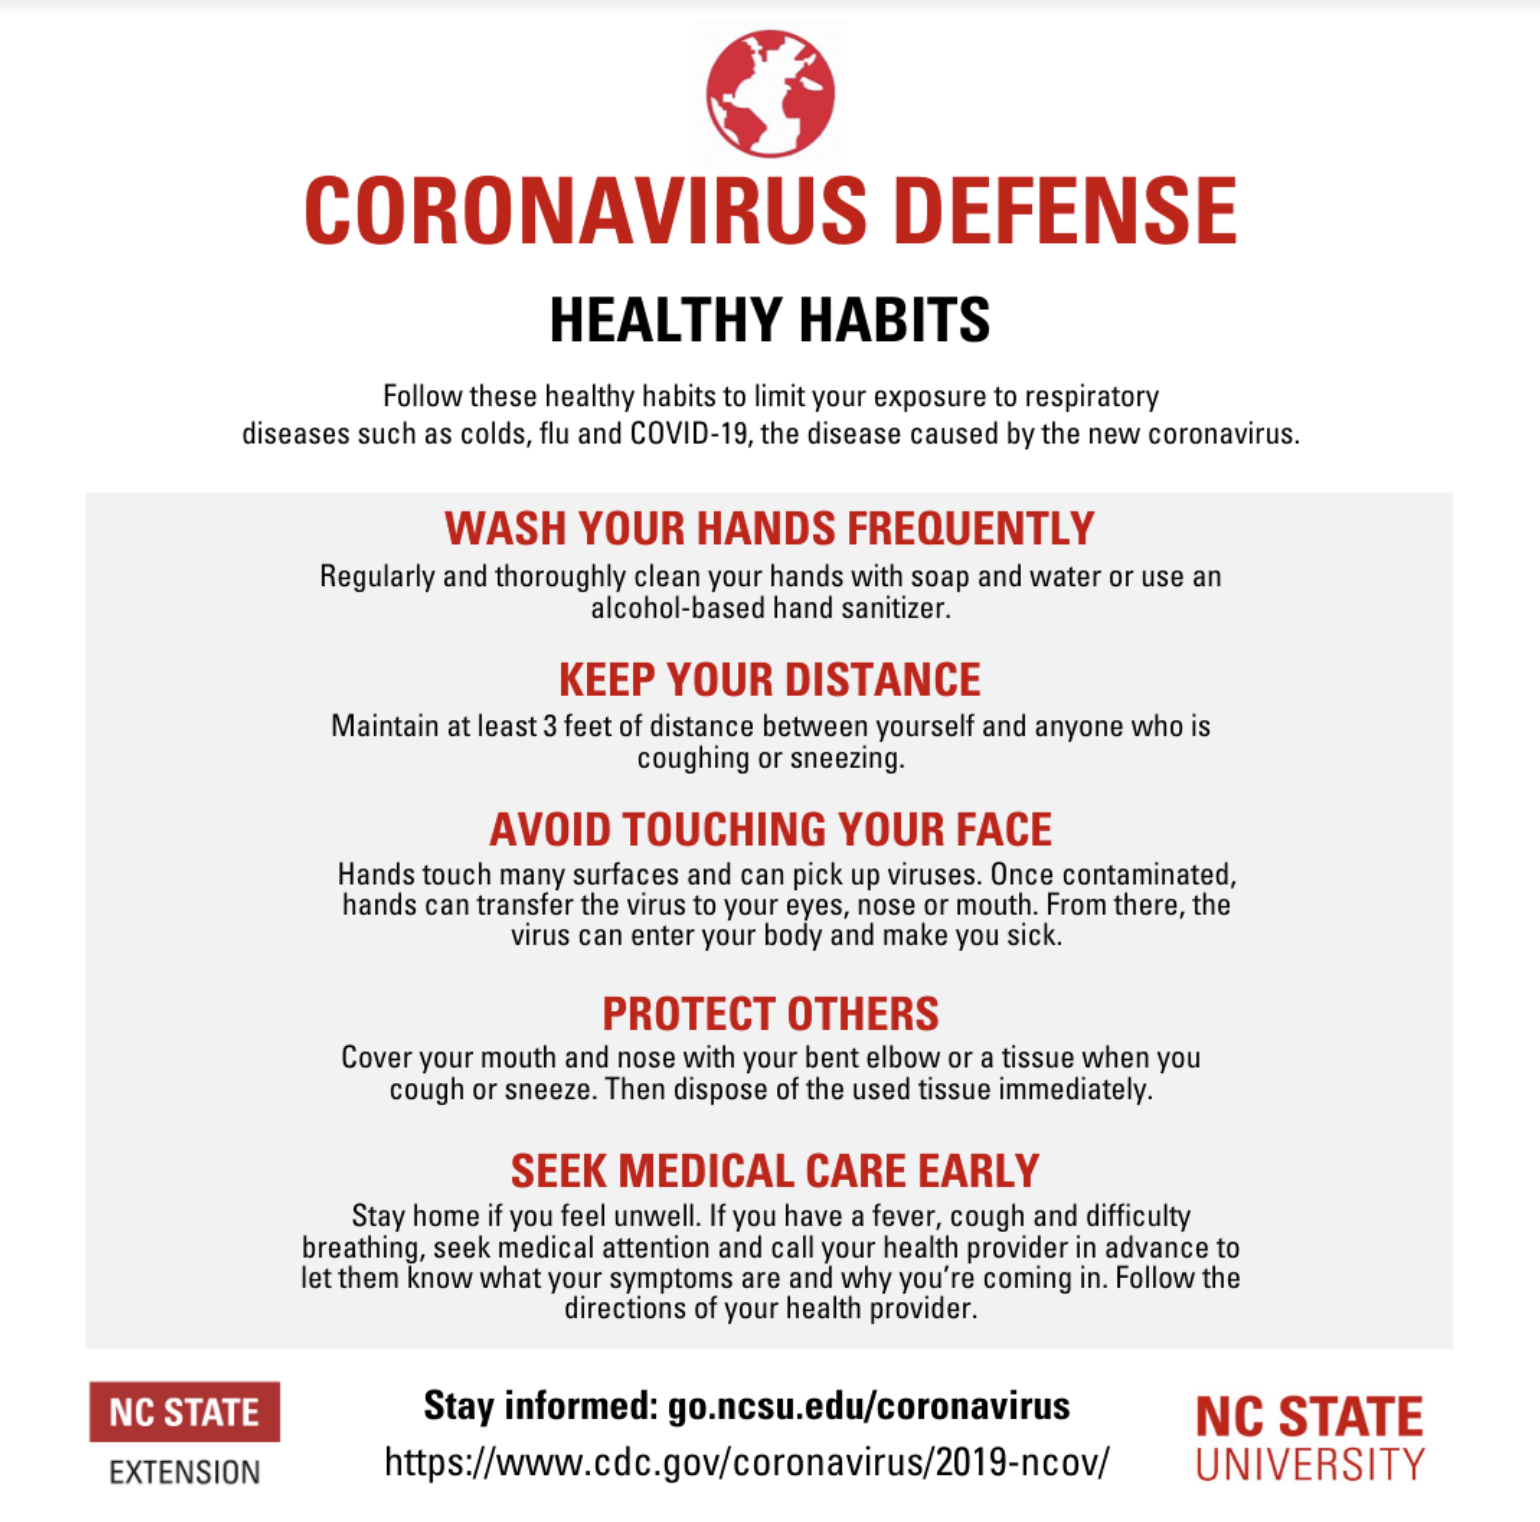 Coronavirus Defense Healthy Habits infographic